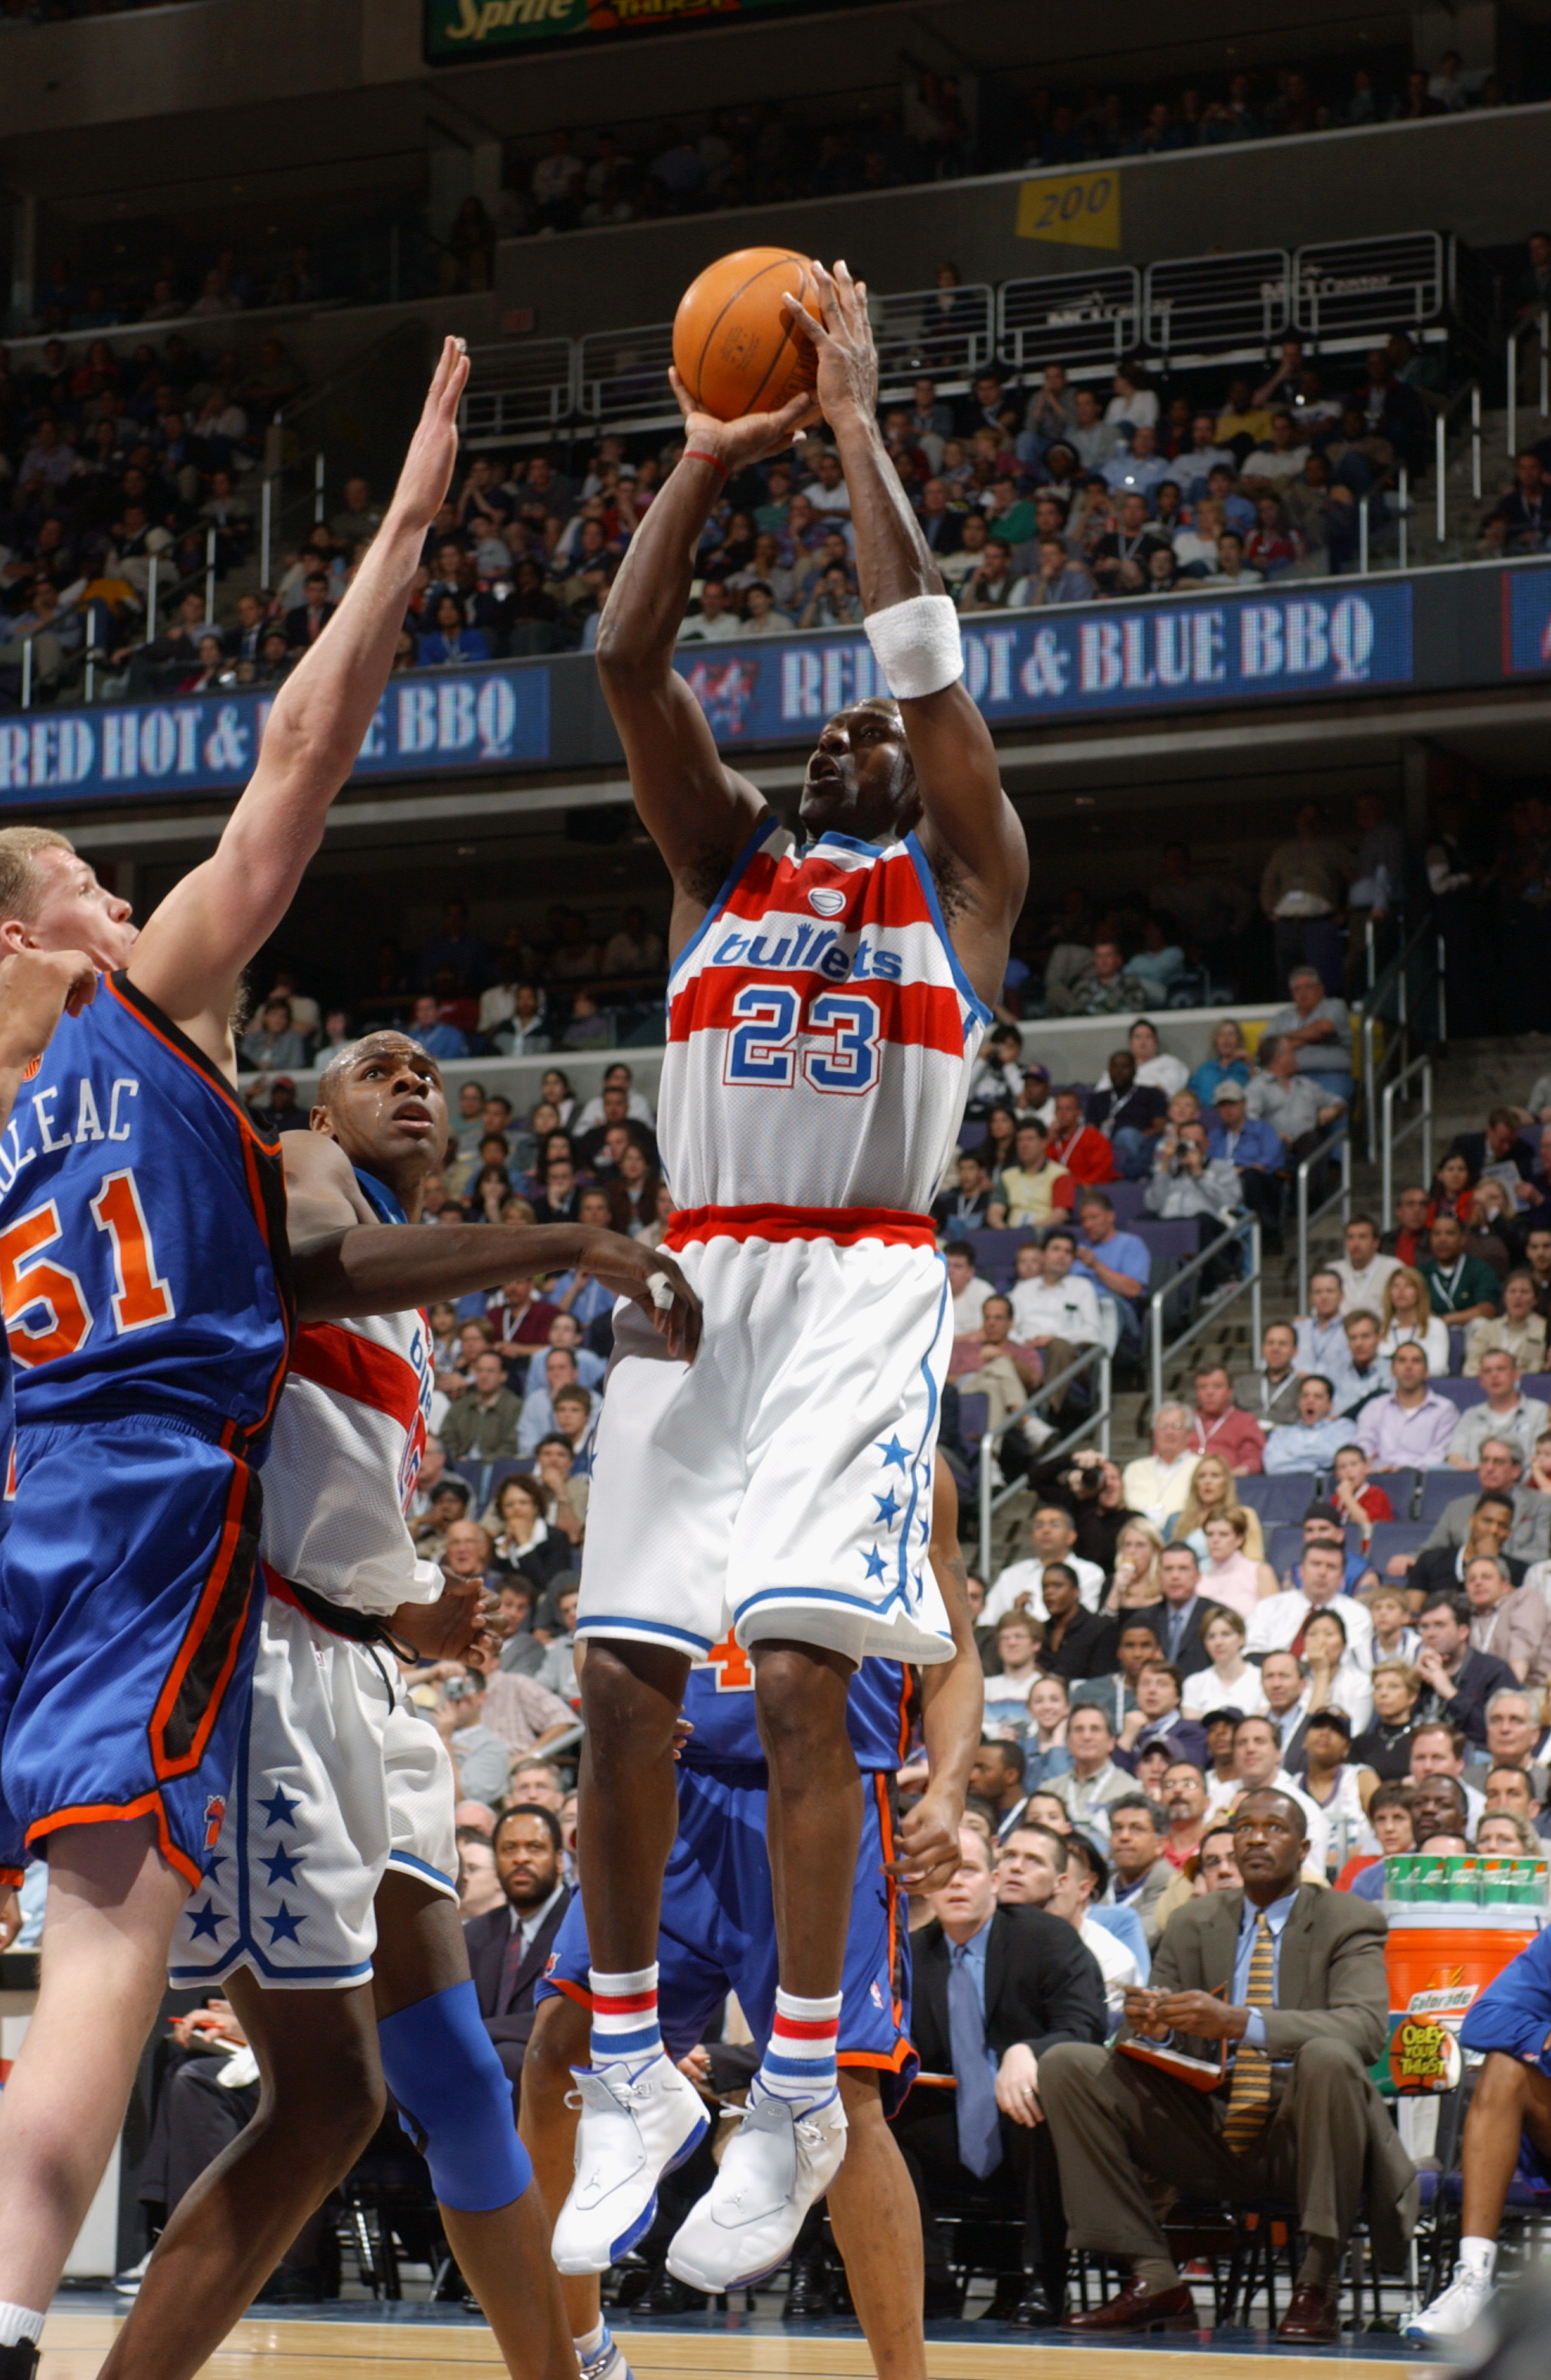 WASHINGTON - APRIL 14:  Michael Jordan #23 of the Washington Wizards shoots a jump shot over Michael Doleac #51 of the New York Knicks during Jordan's final home game at MCI Center on April 14, 2003 in Washington, DC.  The Knicks won 93-79.  NOTE TO USER: